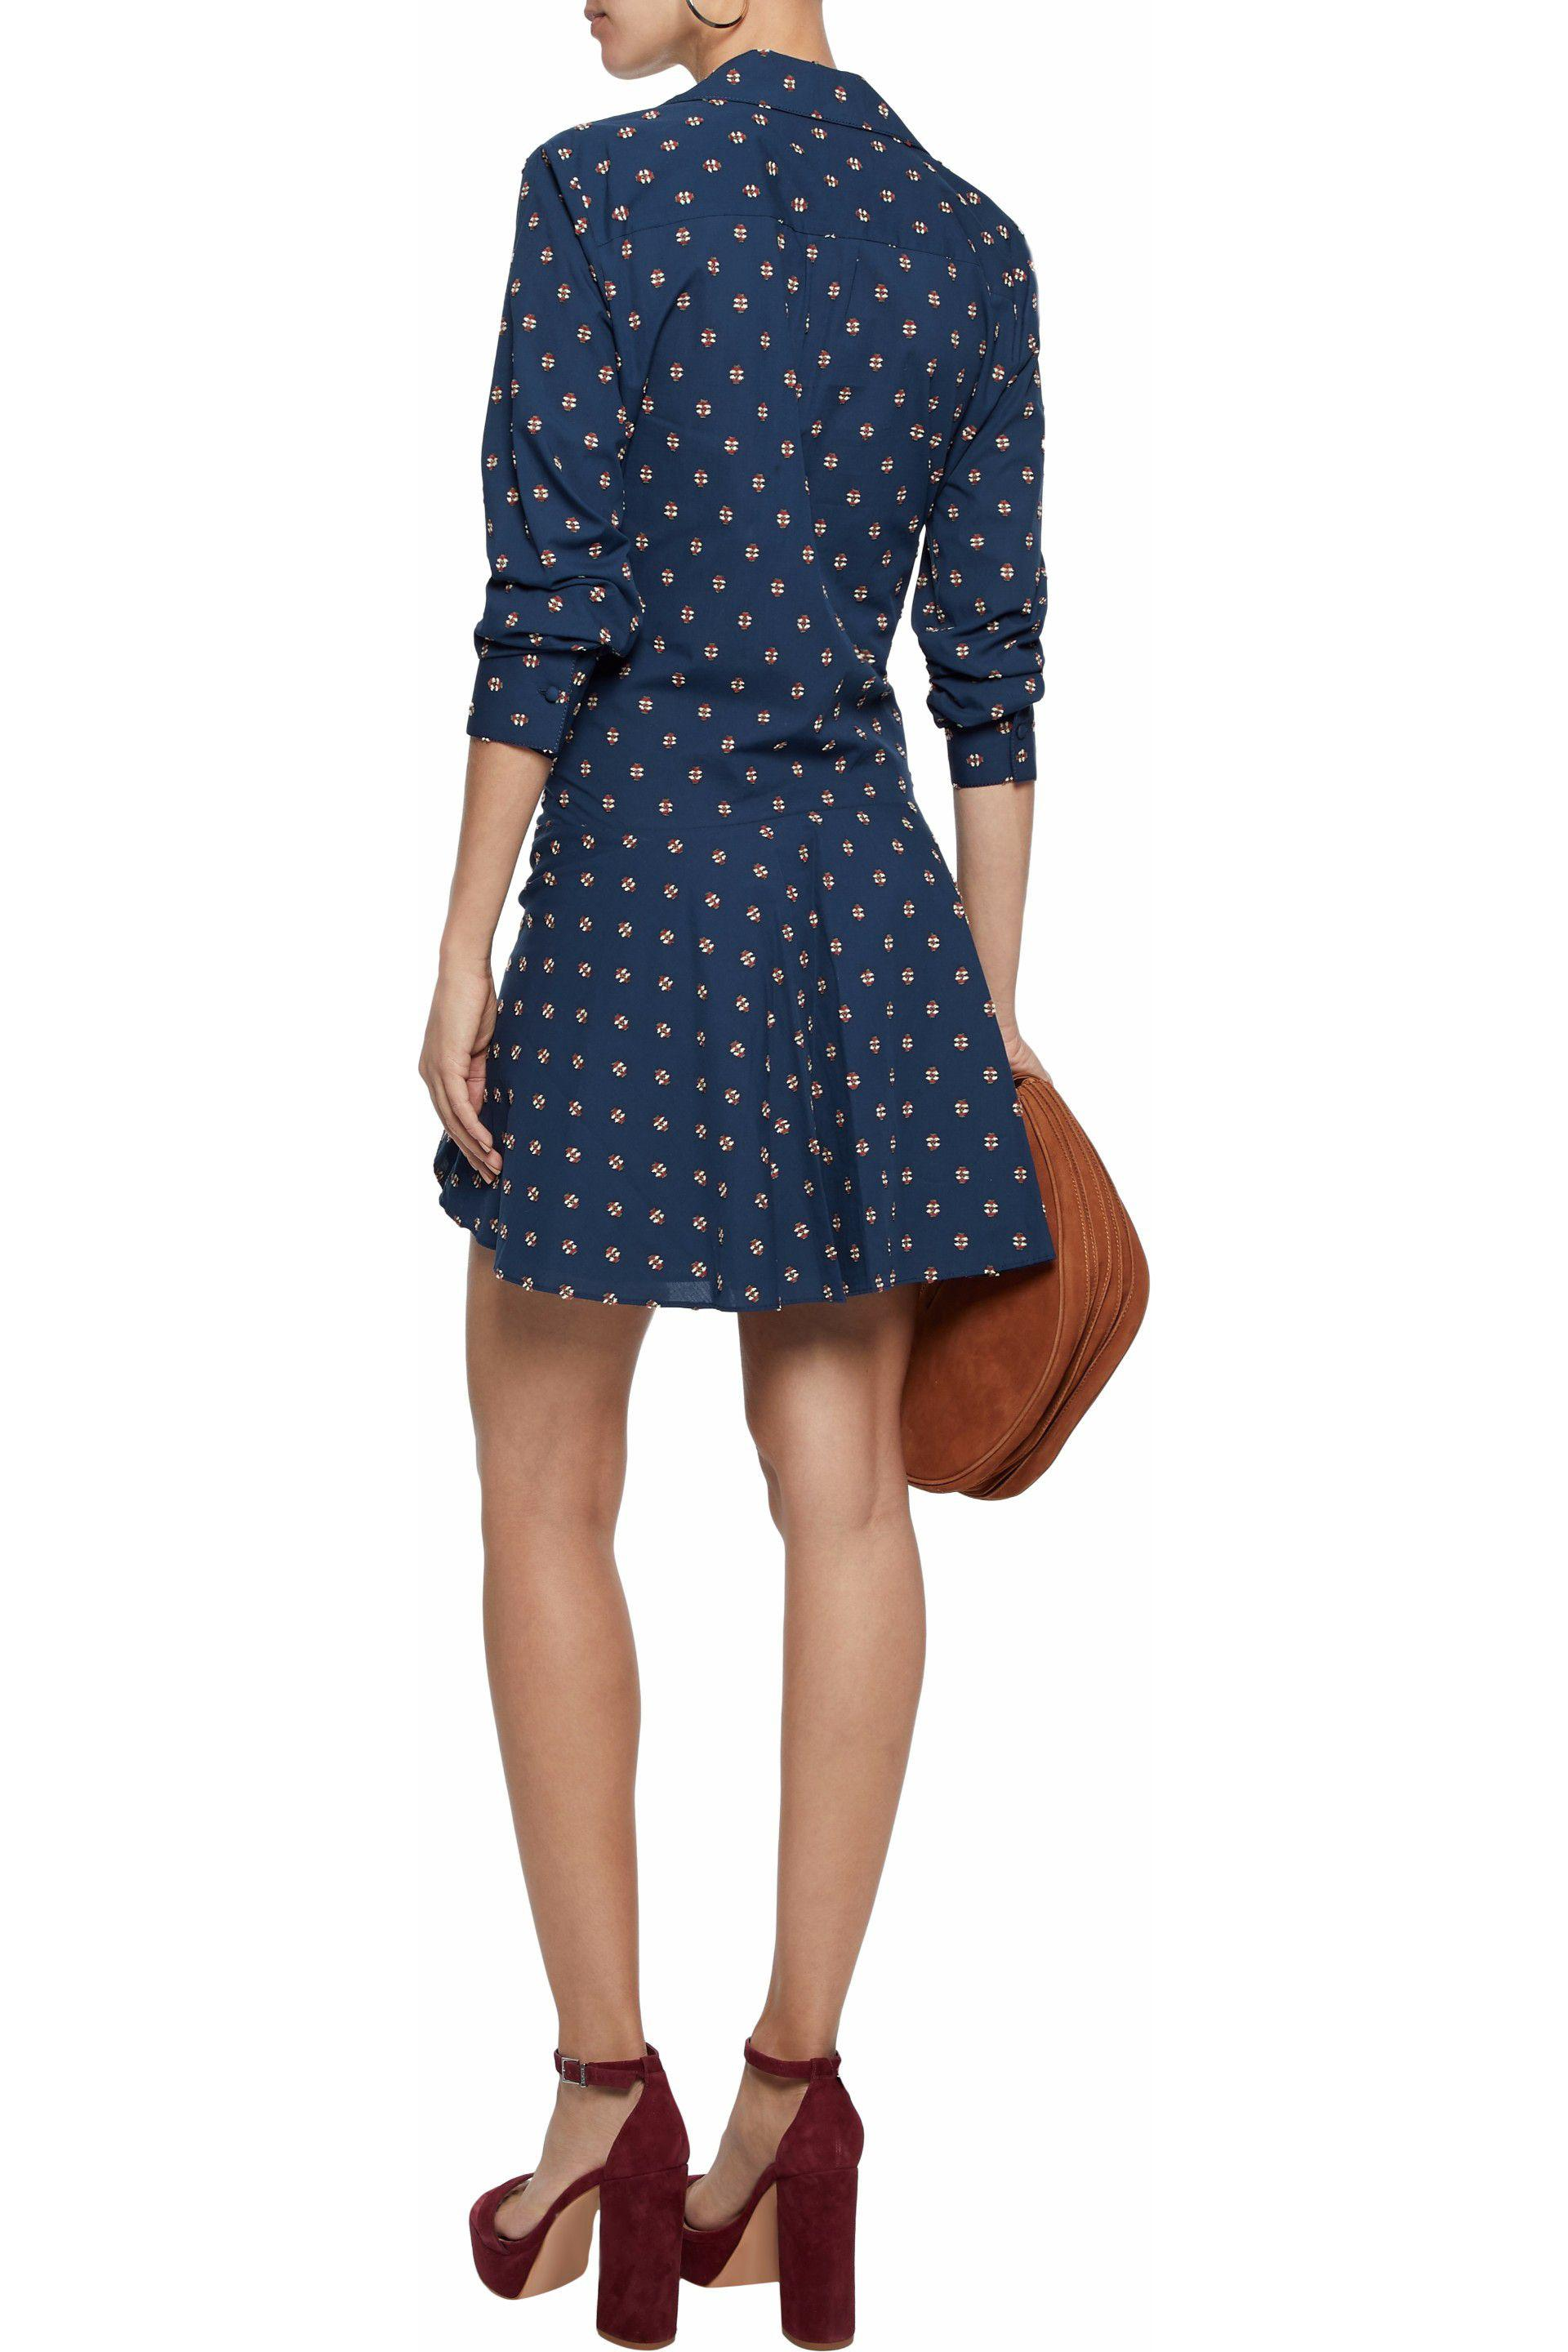 Derek Lam 10 Crosby Woman Tie-front Cotton-poplin Mini Dress Midnight Blue Size 10 Derek Lam bwDSHaGym